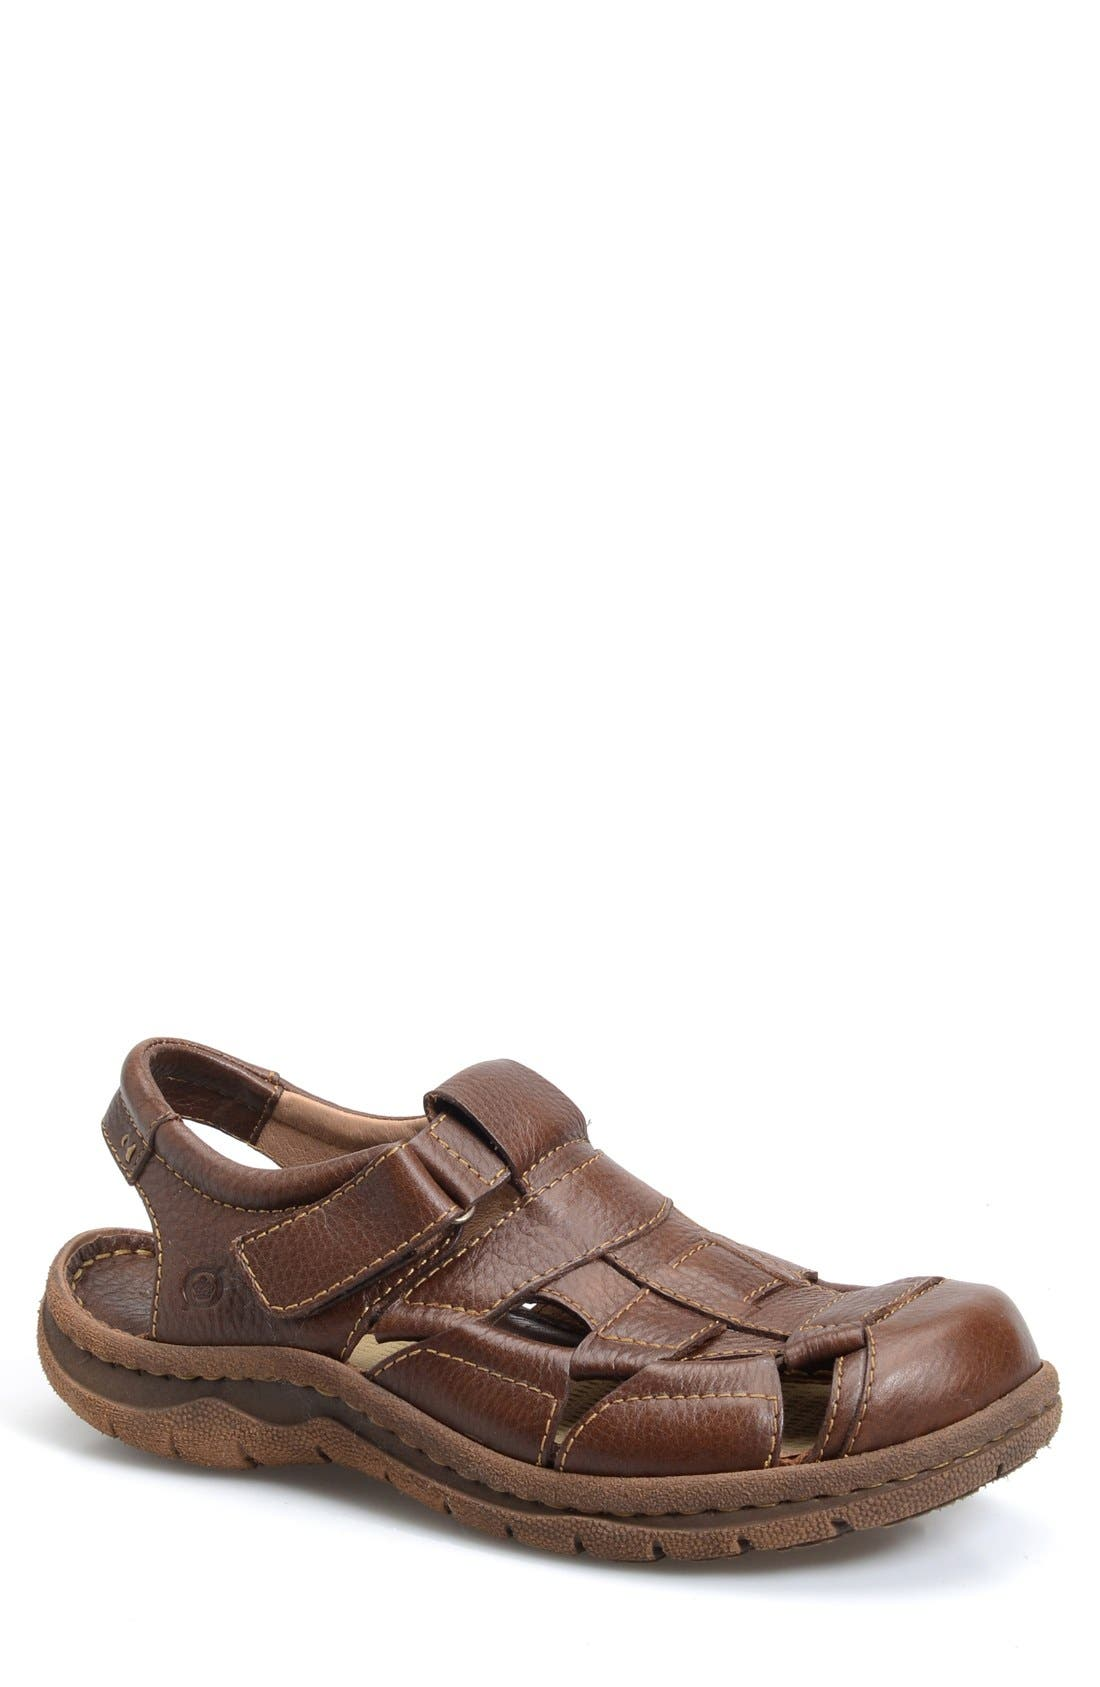 'Cabot II' Sandal,                         Main,                         color, Brown Leather